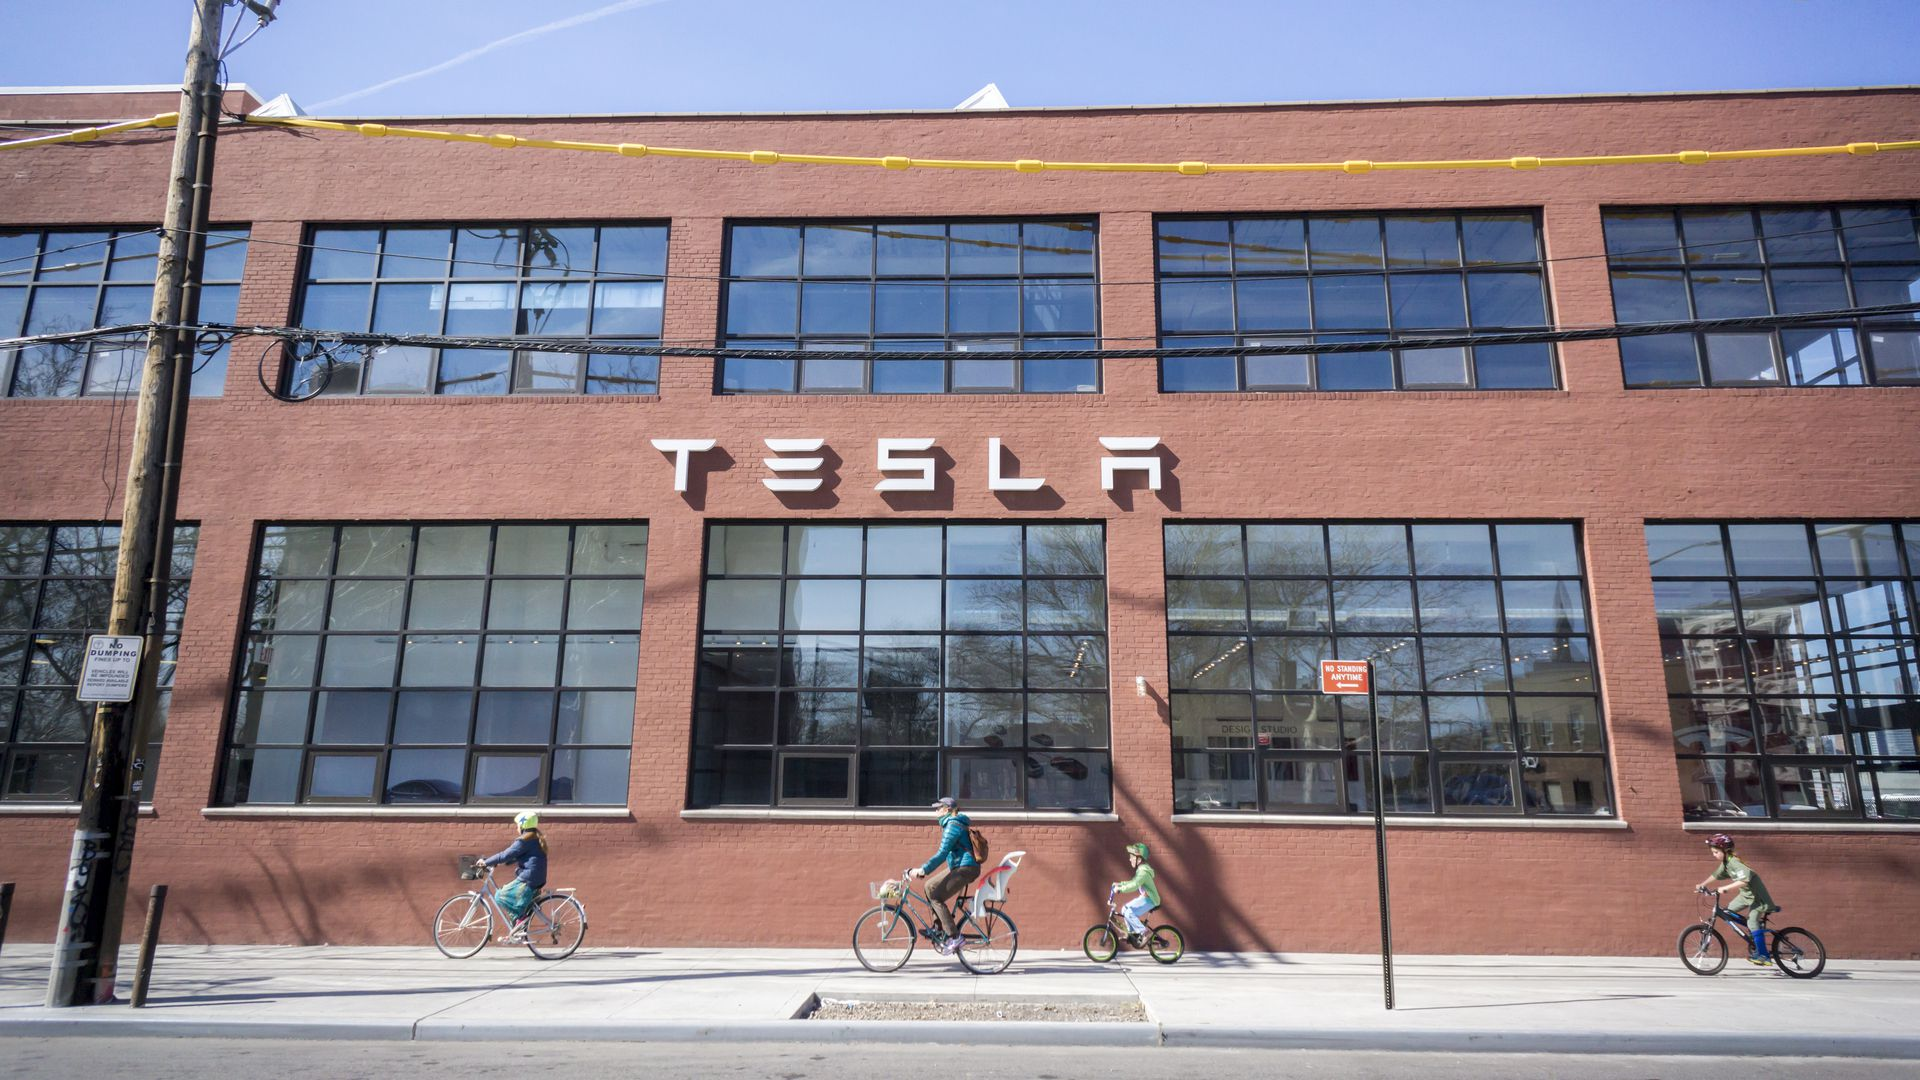 The new Tesla Motors showroom and service center in the Red Hook neighborhood of Brooklyn, New York.